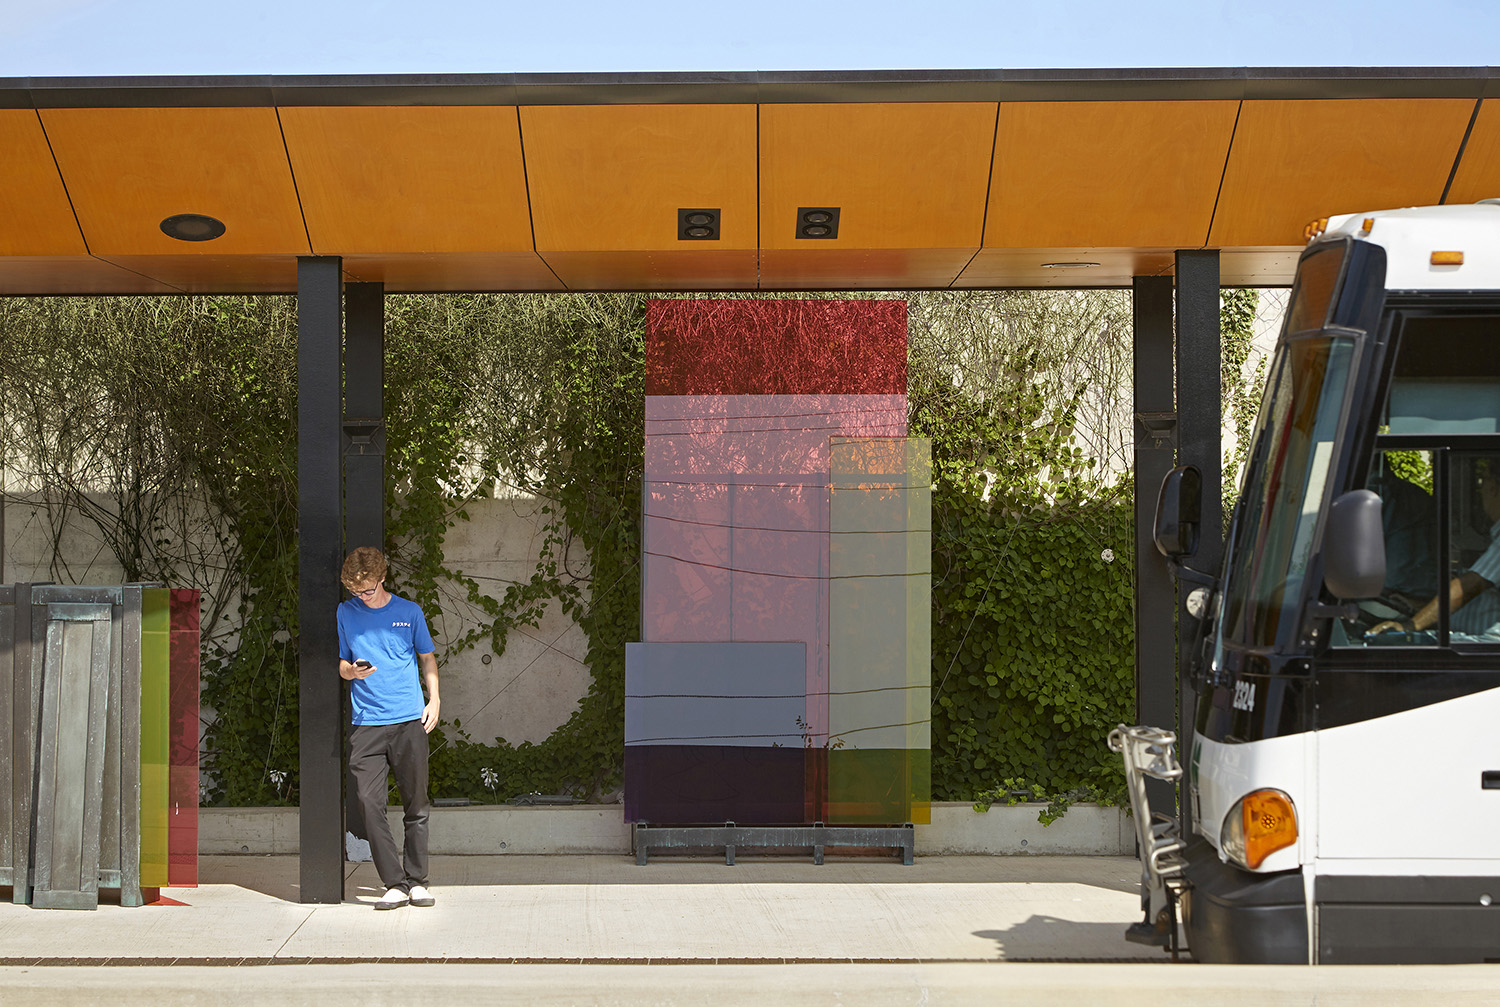 Mississauga Transitway - Living Wall and Integrated Art Ben Rahn/A-Frame Inc.